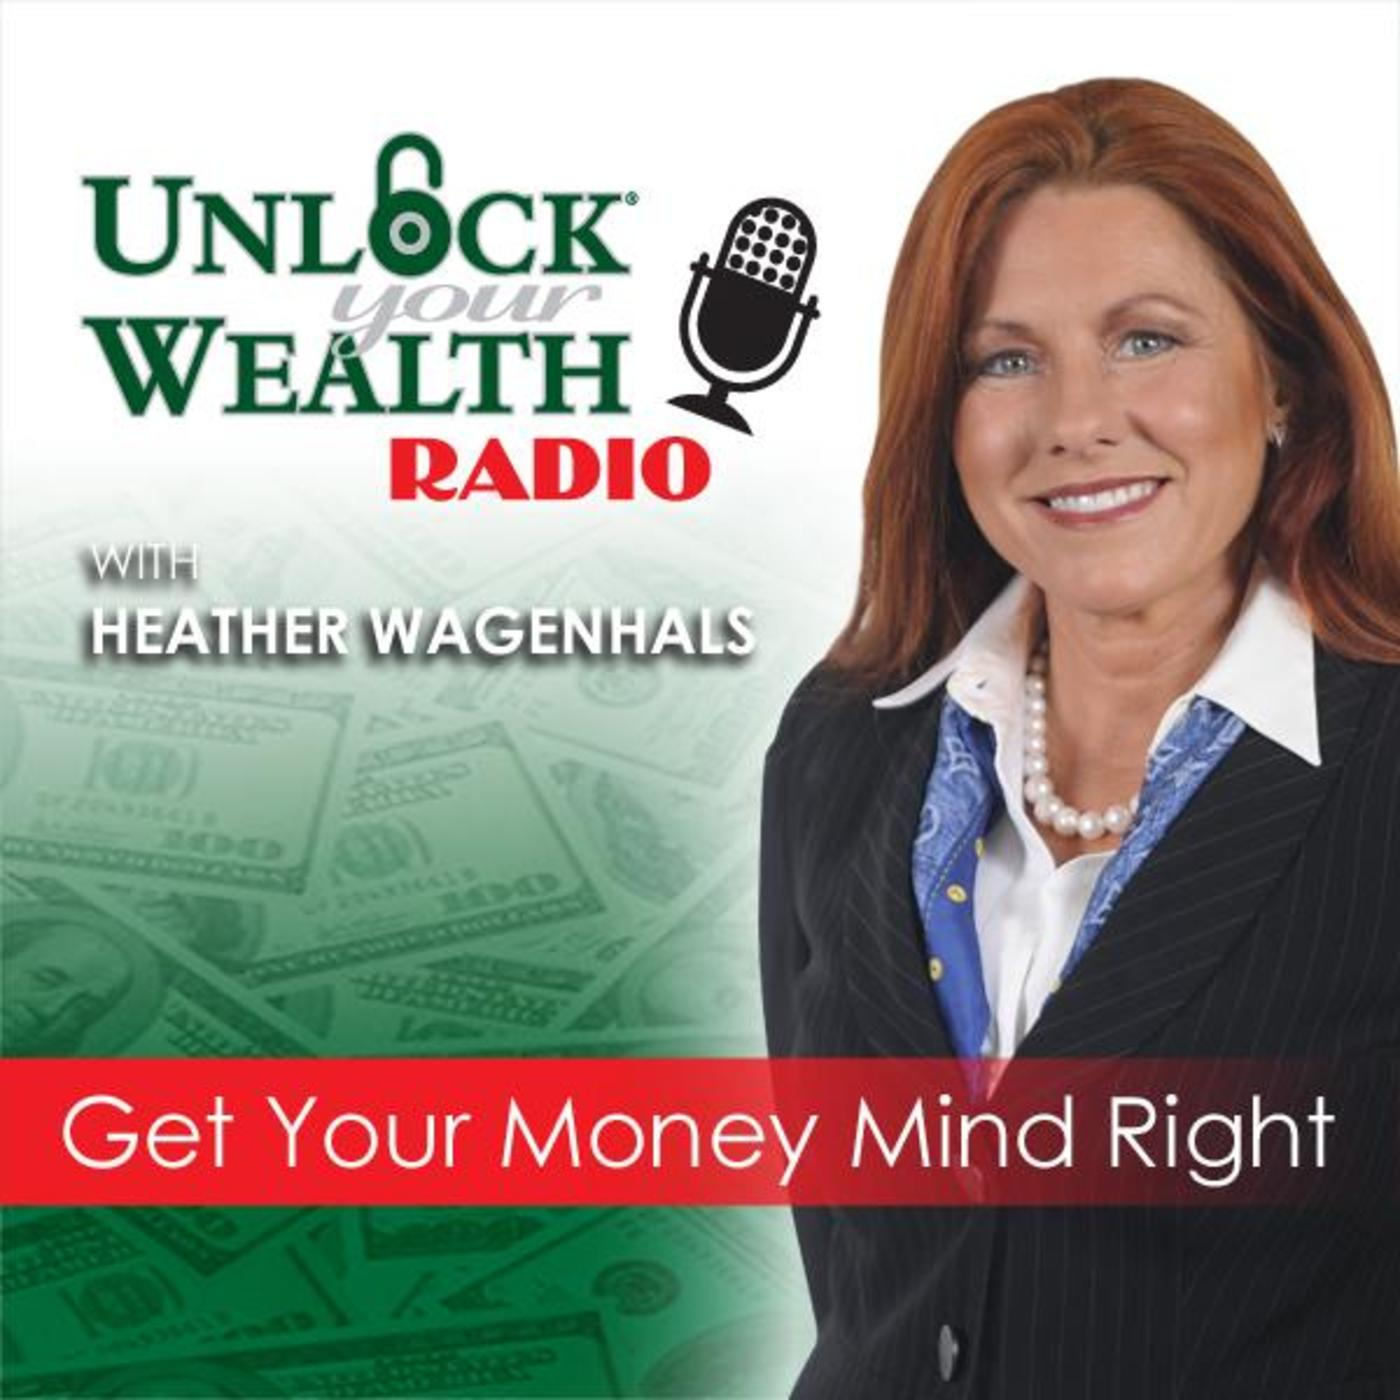 Unlock Your Wealth Radio with Heather Wagenhals